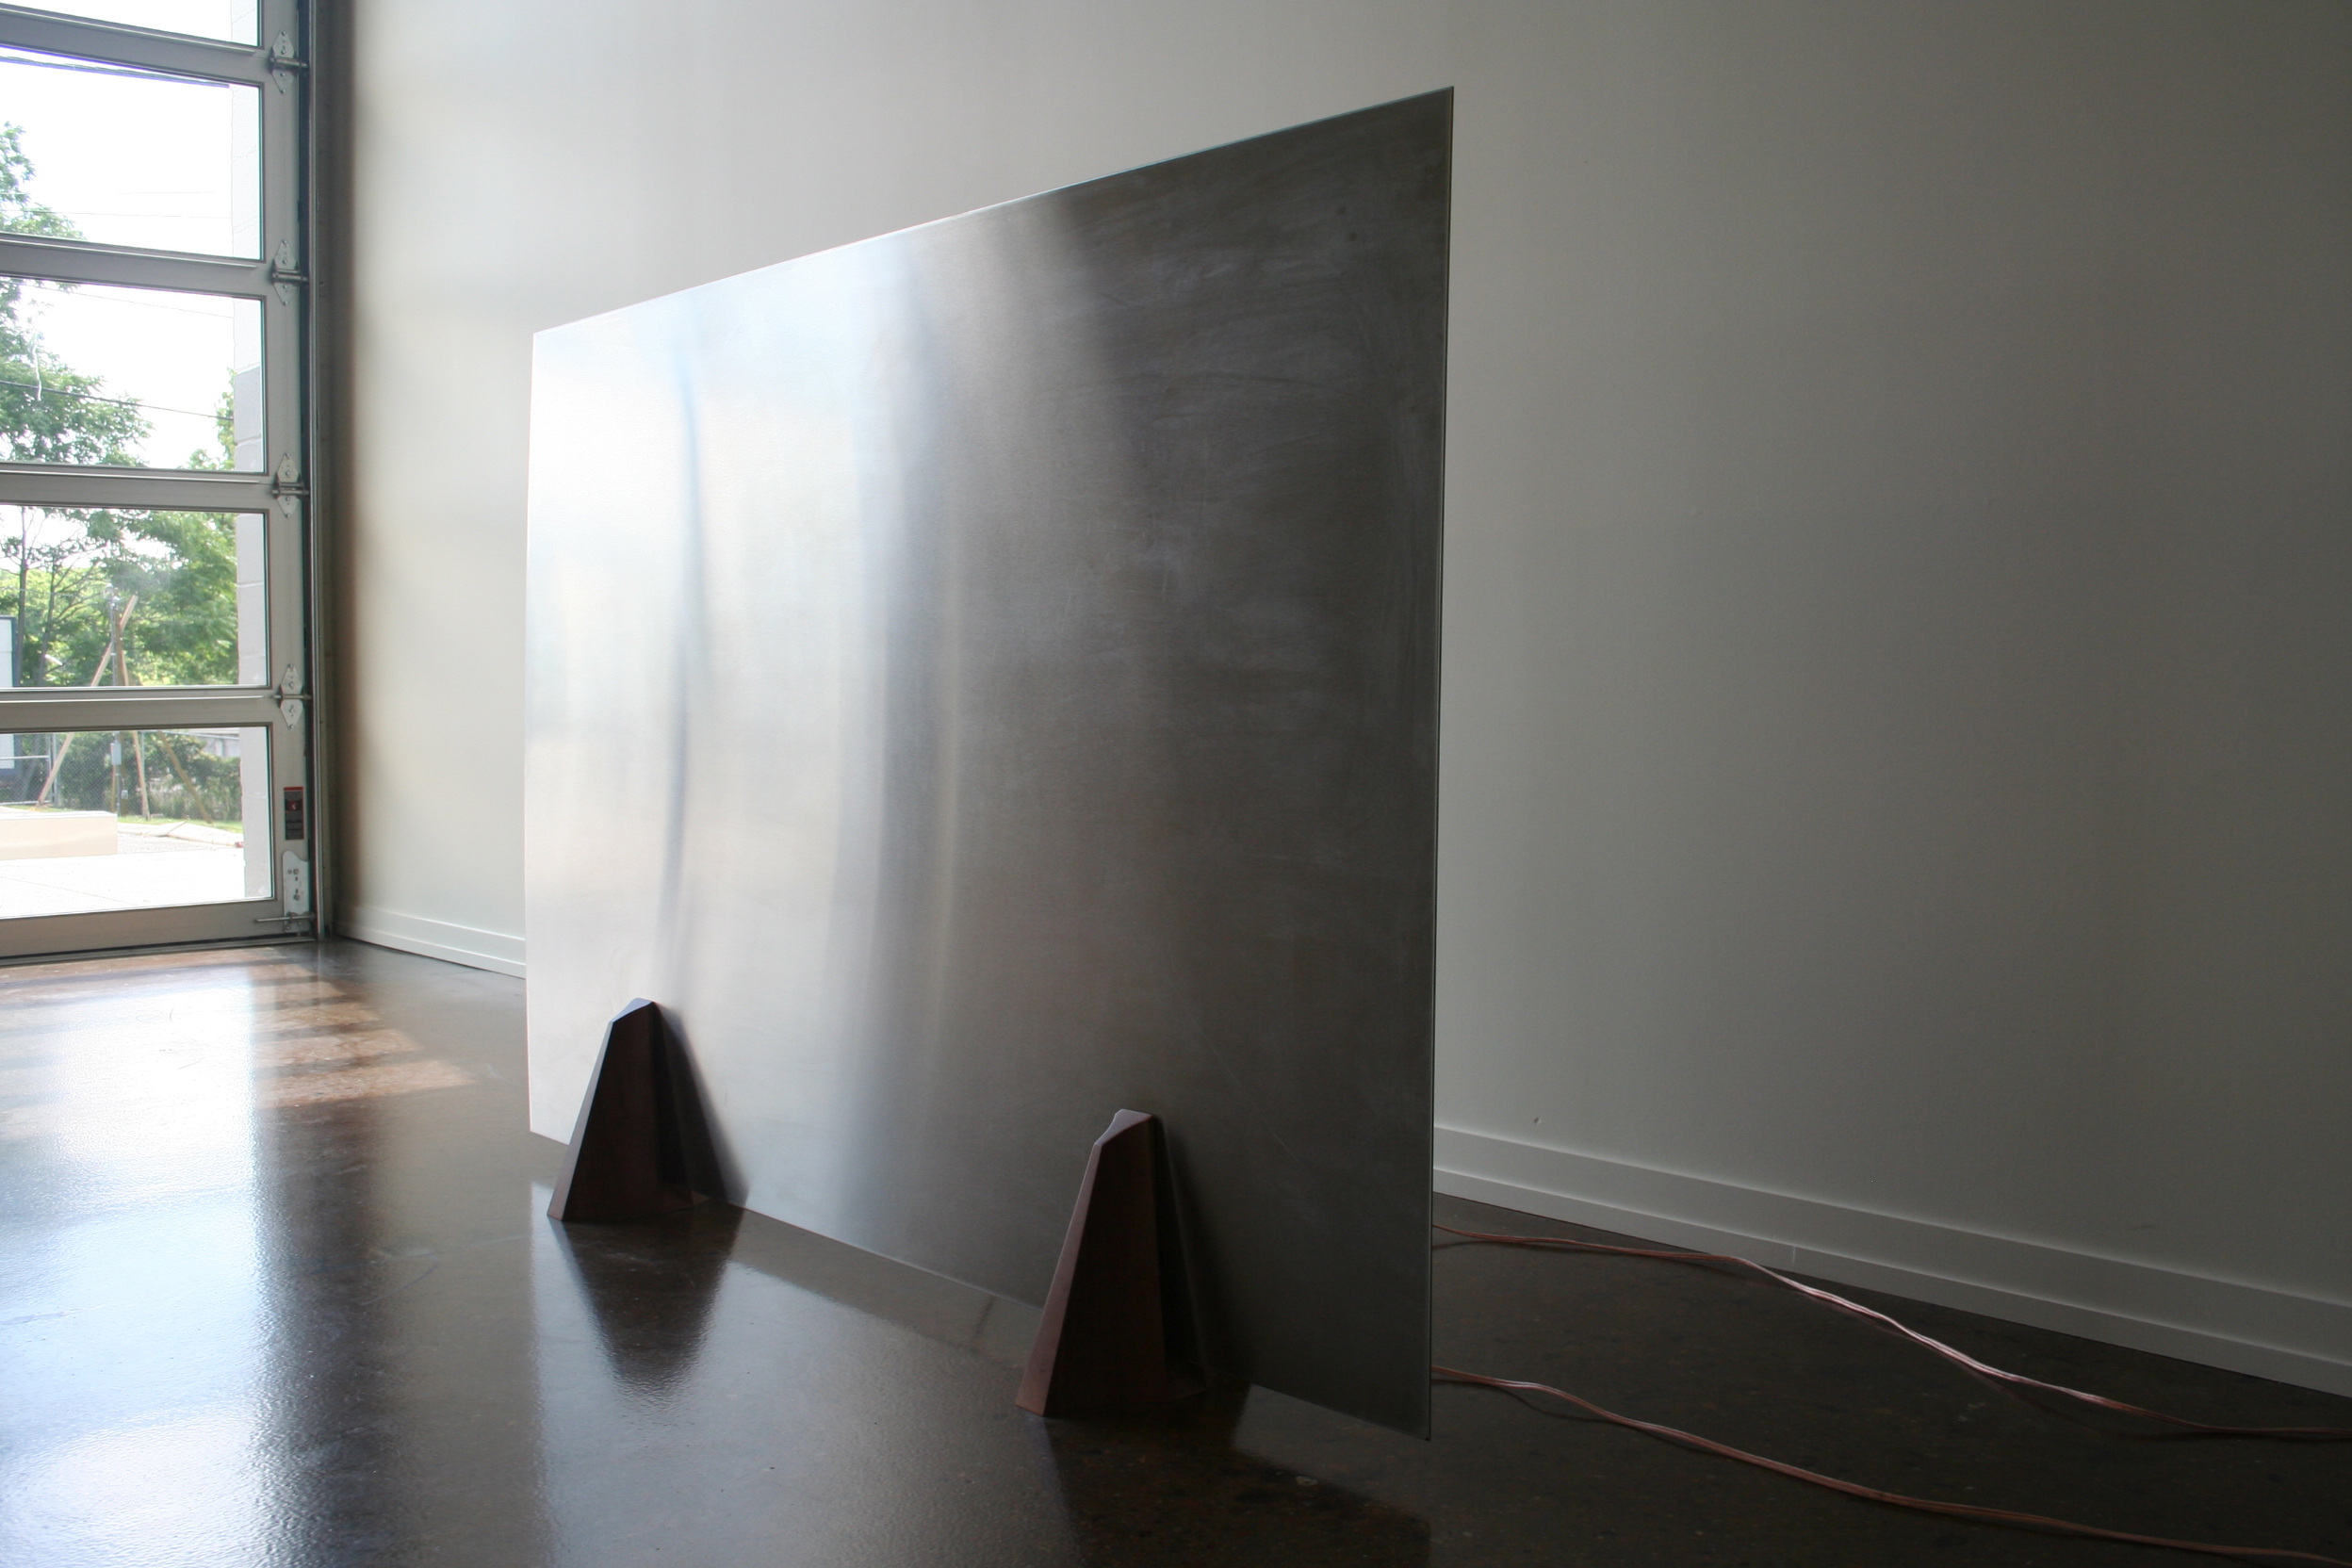 Greg Pond, Phonotactic Plate  2013, collaboration with Jesse Thompson, wood, stainless steel, electronics, software, sound